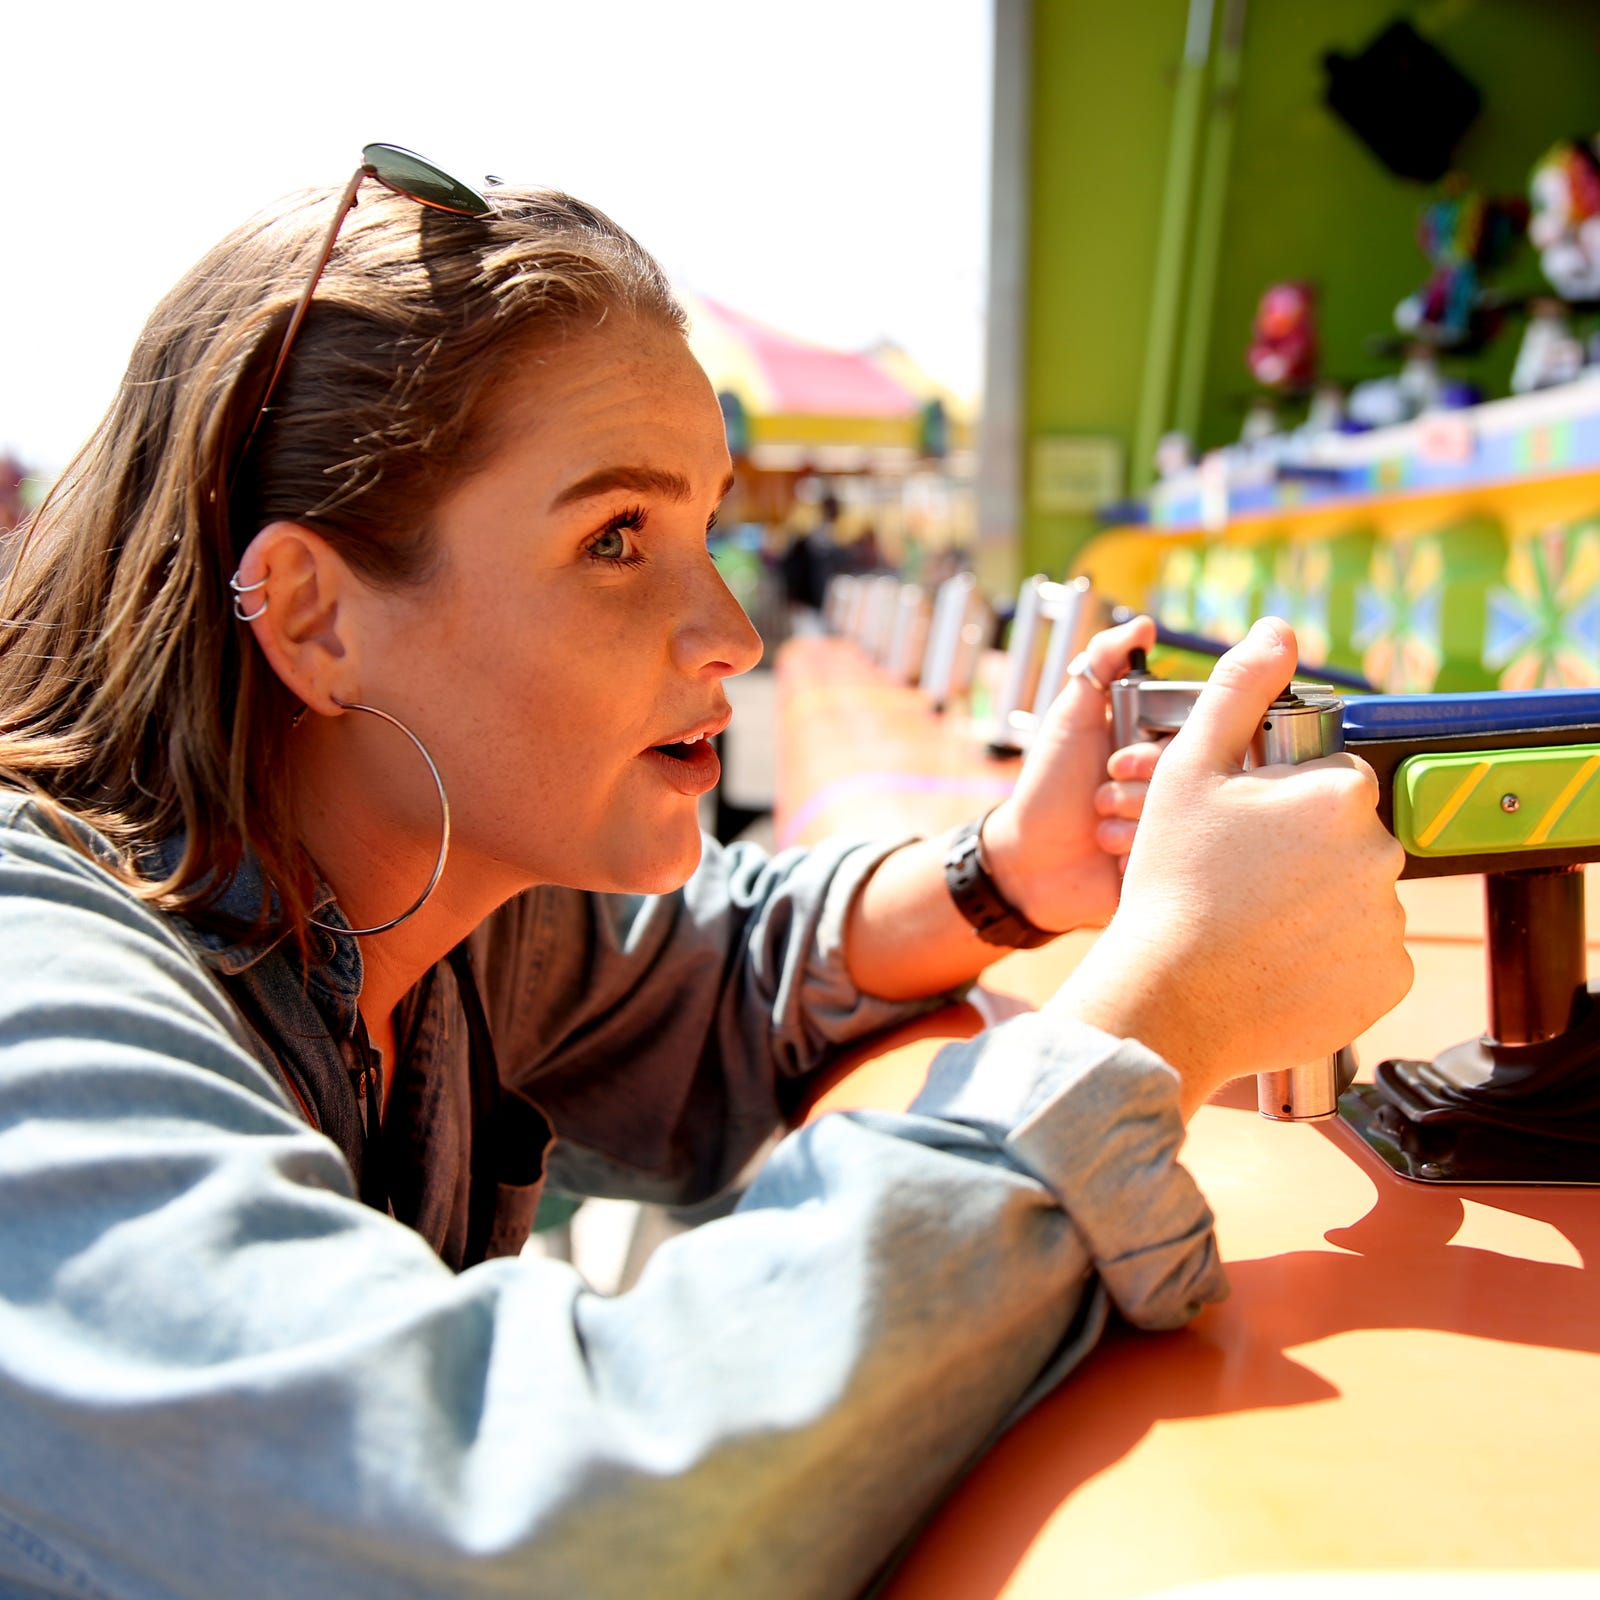 Oregon State Fair: Tips and tricks to increase odds of winning 5 types of carnival games